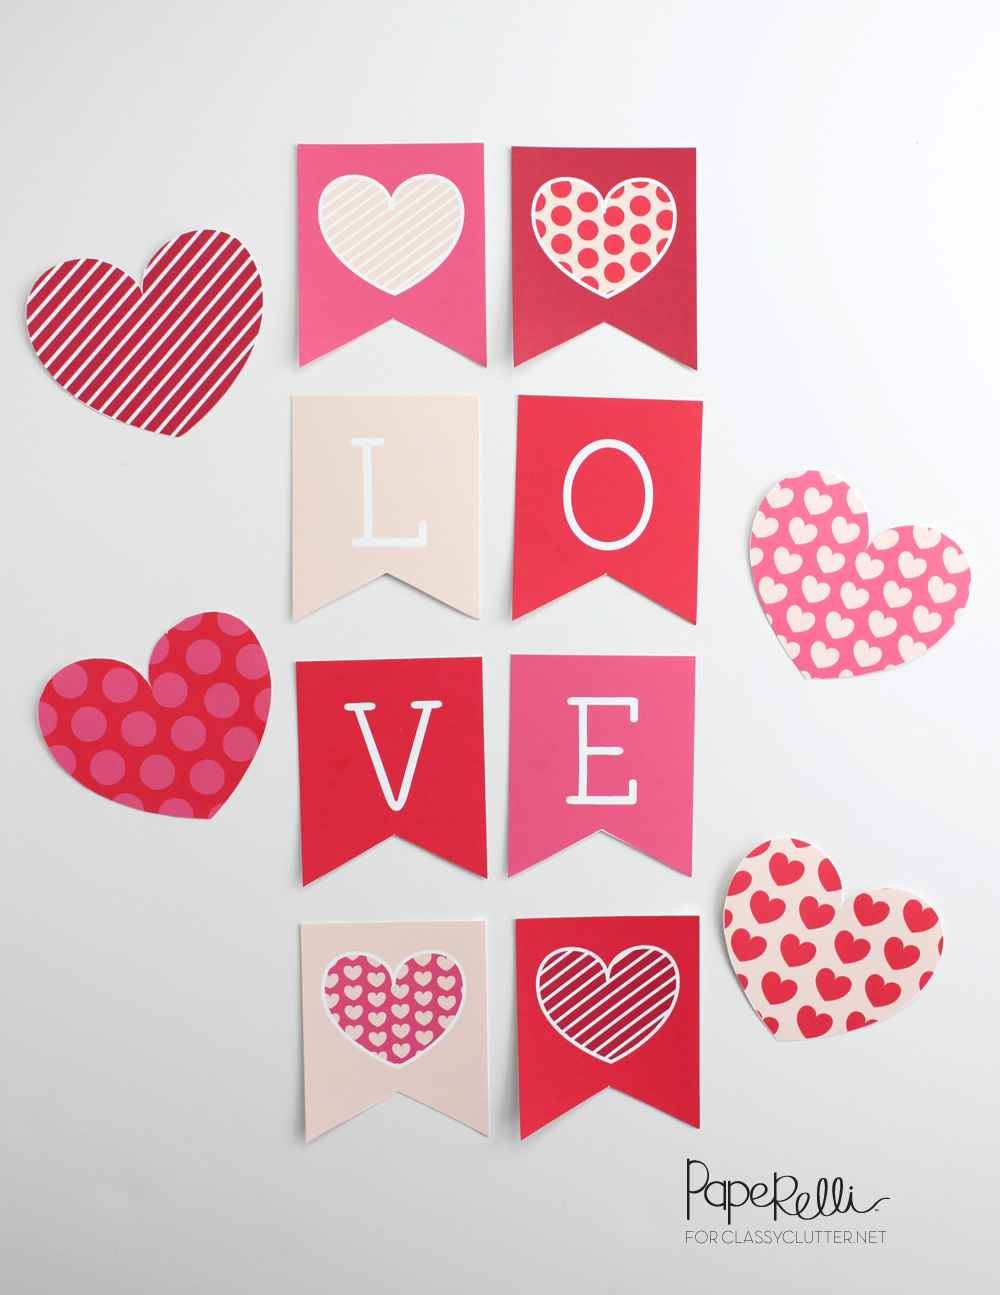 image regarding Valentine's Day Printable Decorations named Enjoyable Valentines Working day Printables - Cly Litter